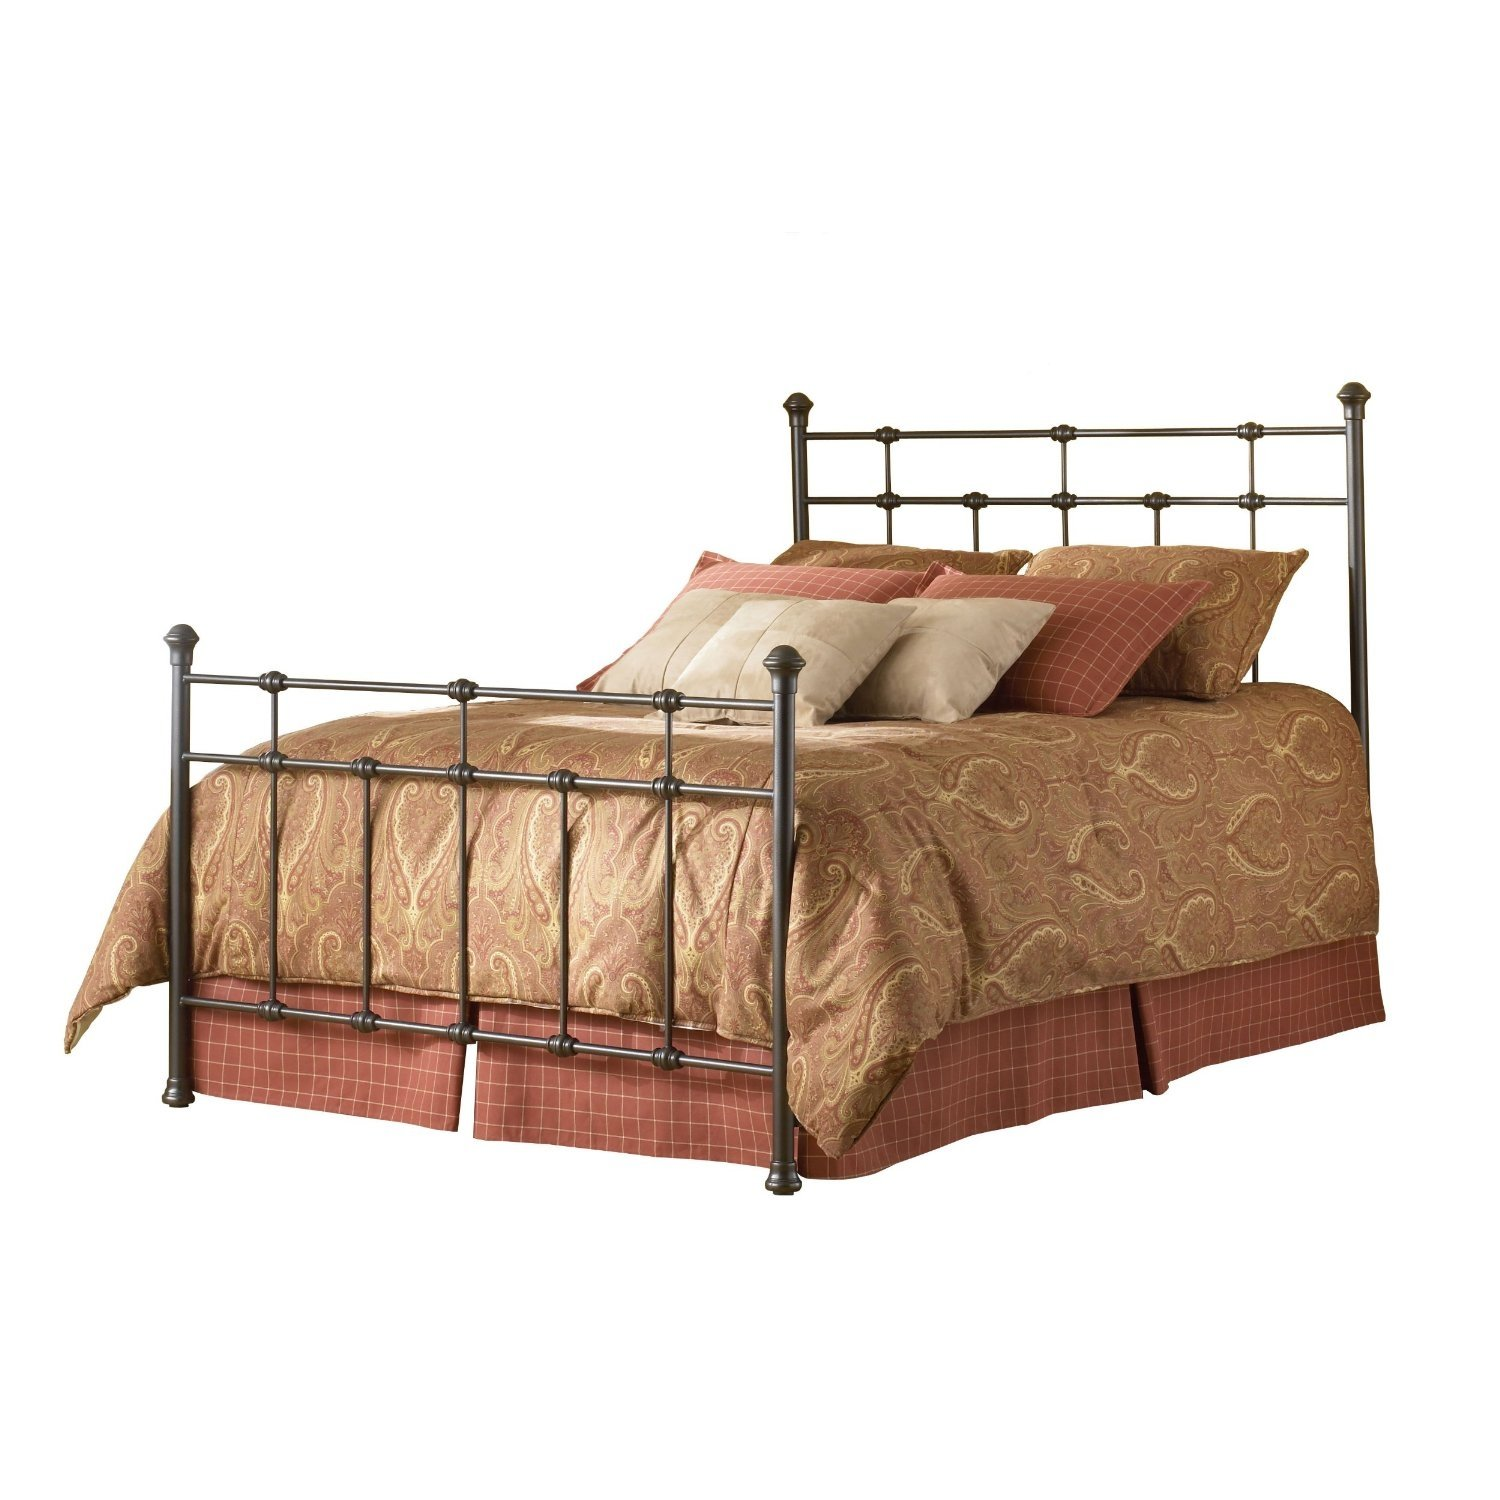 King Size Metal Bed With Headboard And Footboard In Hammered Brown Finish In 2021 Bed Styling Headboards For Beds Metal Beds